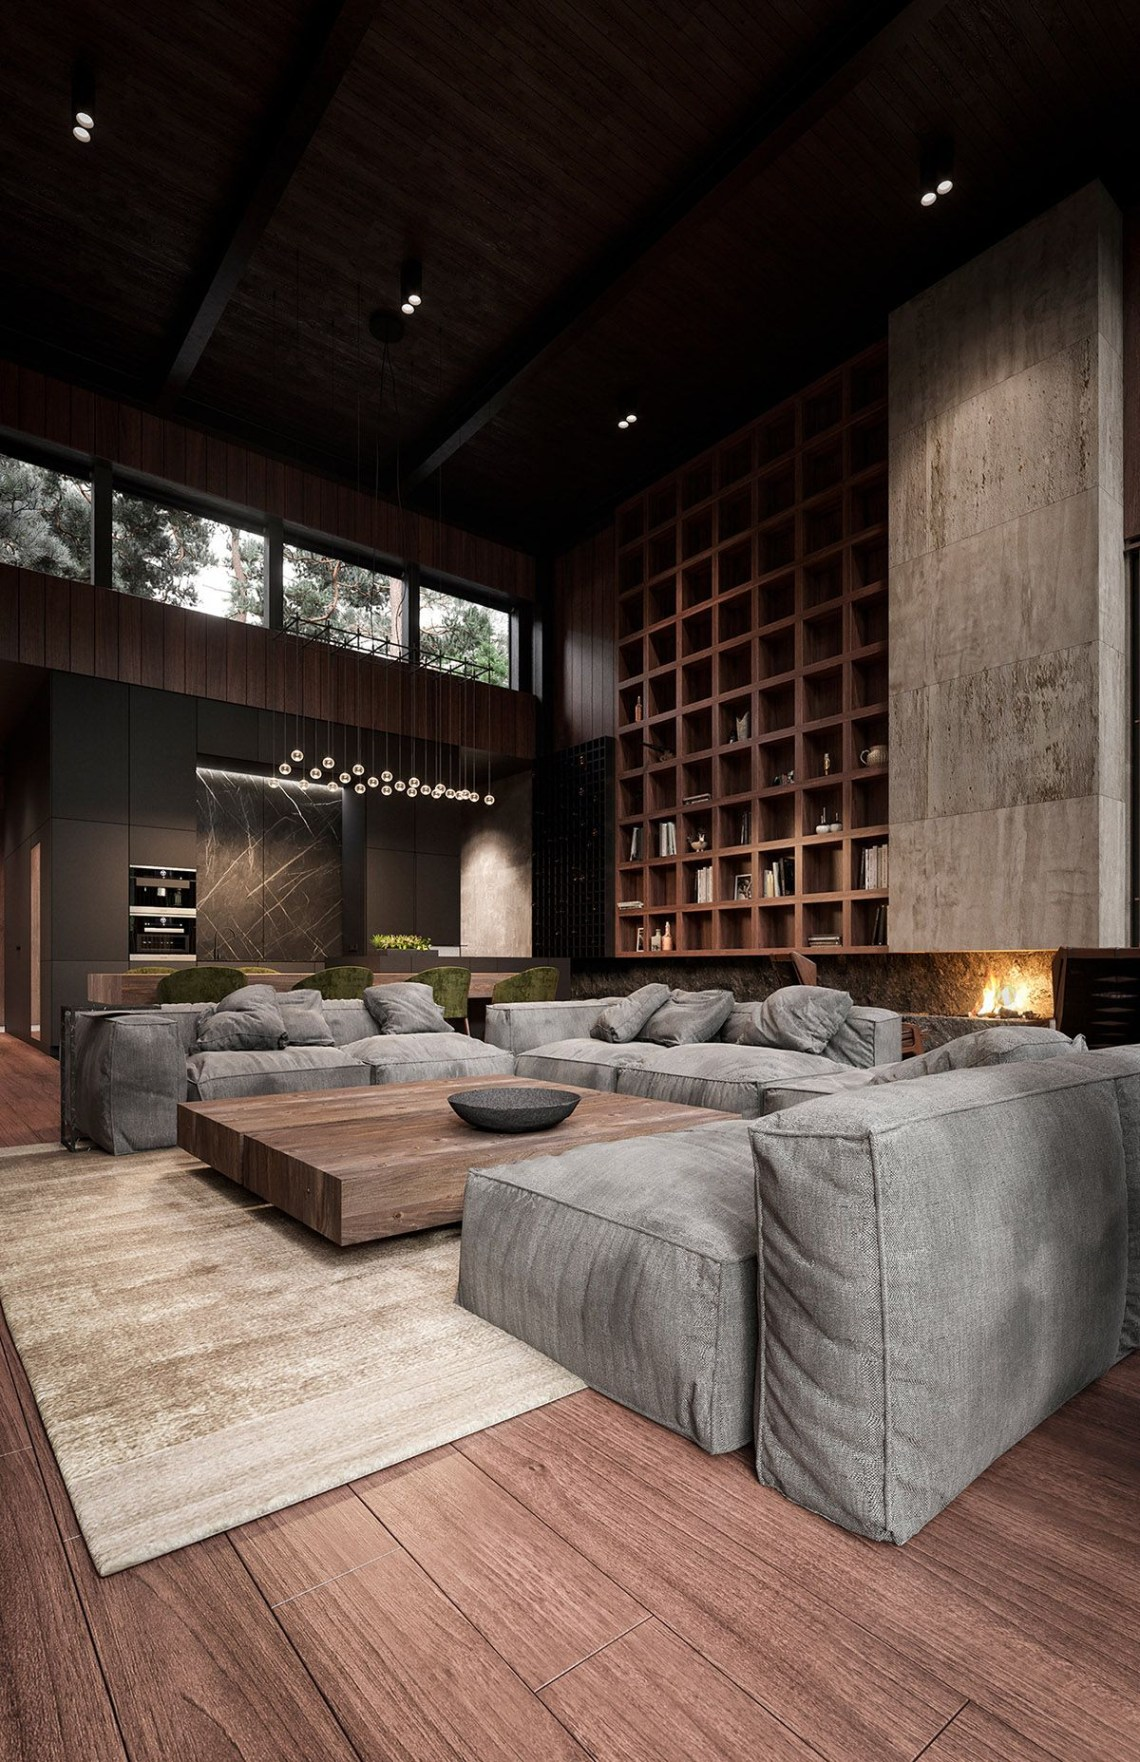 Rich Exquisite Modern Rustic Home Interior Minimalism